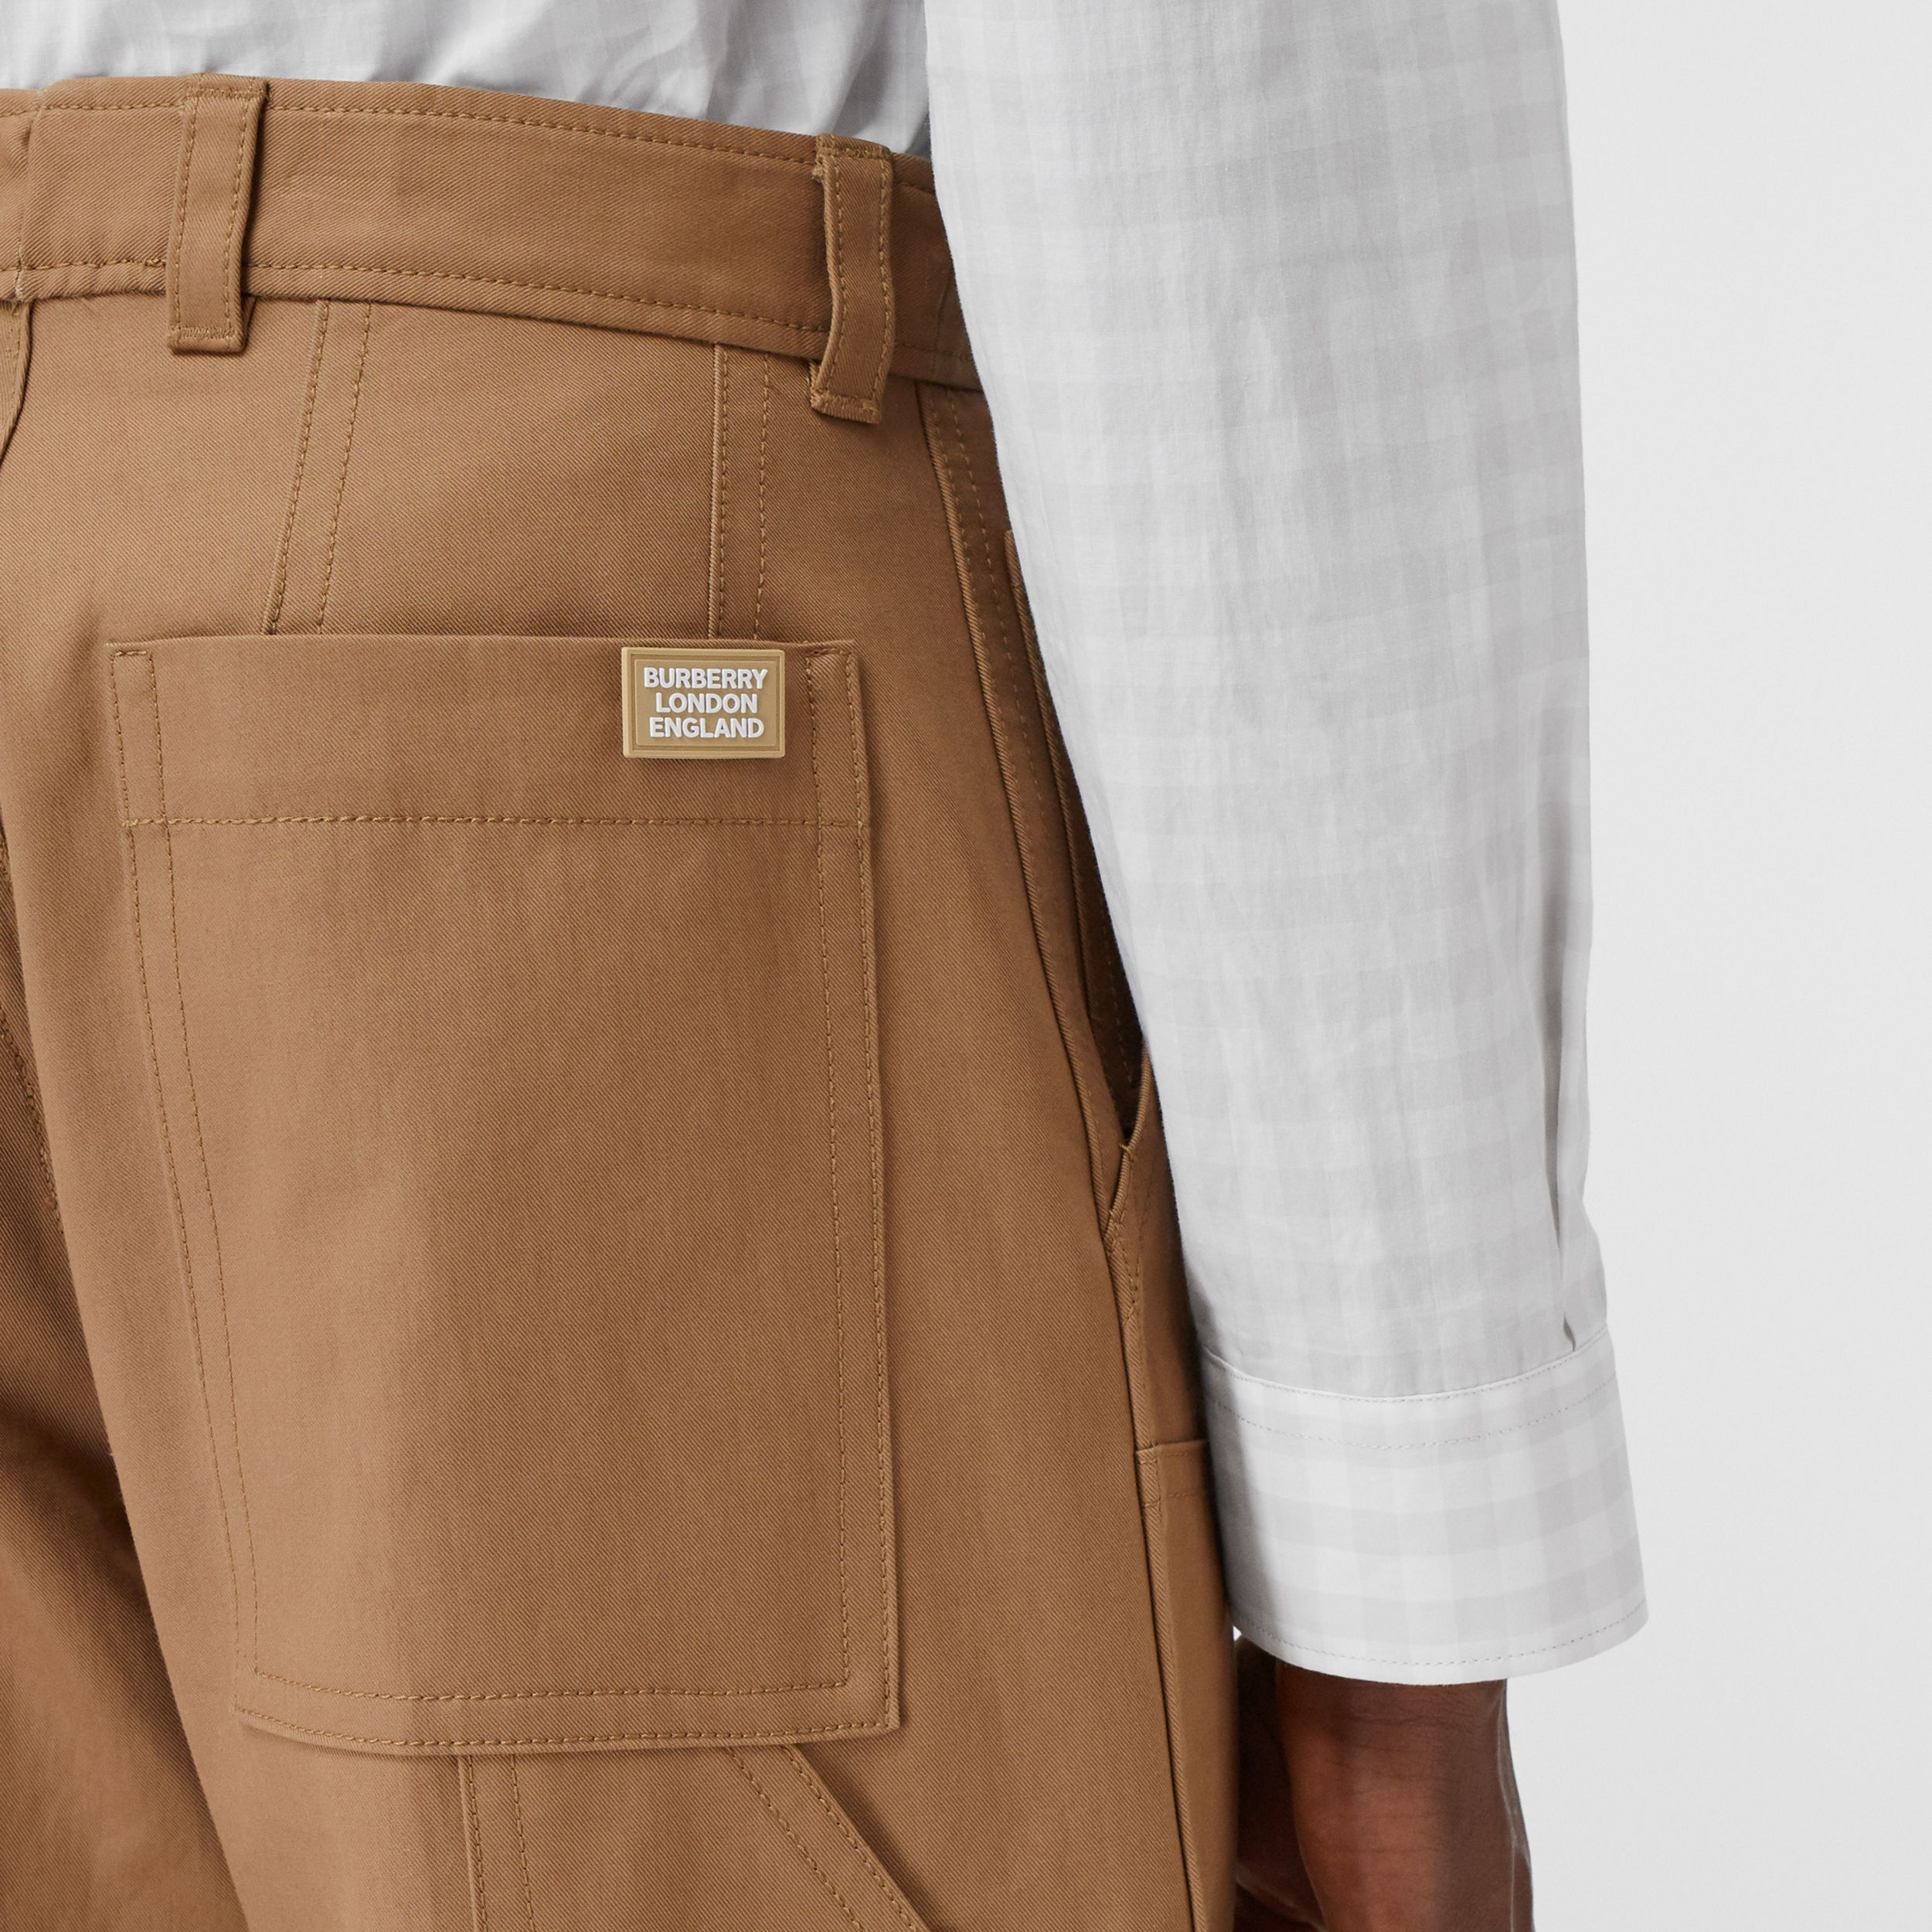 Cotton Twill Tailored Trousers in Warm Walnut - Men | Burberry - 2